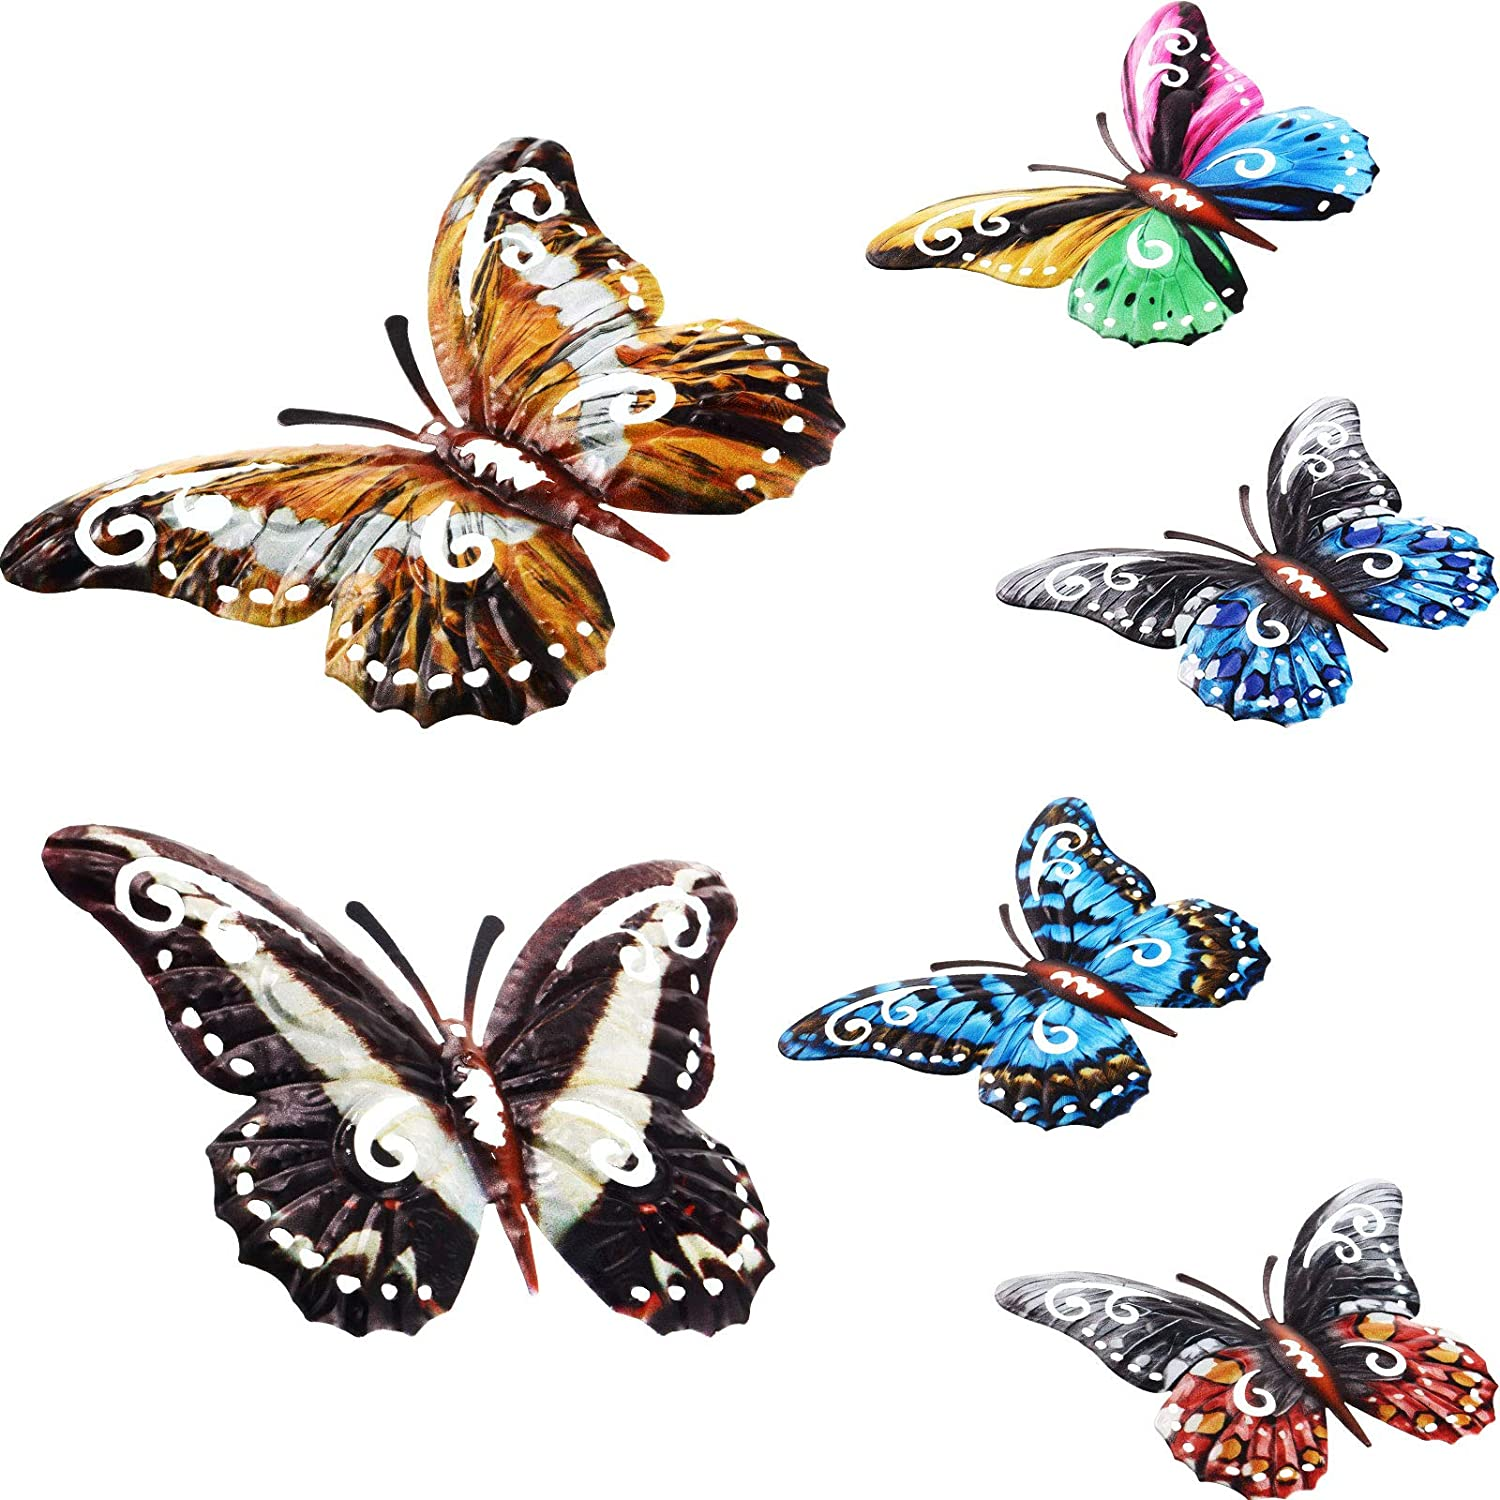 6 Pieces Metal Butterfly Wall Art Decor Butterfly Hanging Wall Decor Colorful Garden Wall Sculptures for Bedroom Living Room Office Garden Indoor Outdoor Boho Home Decor